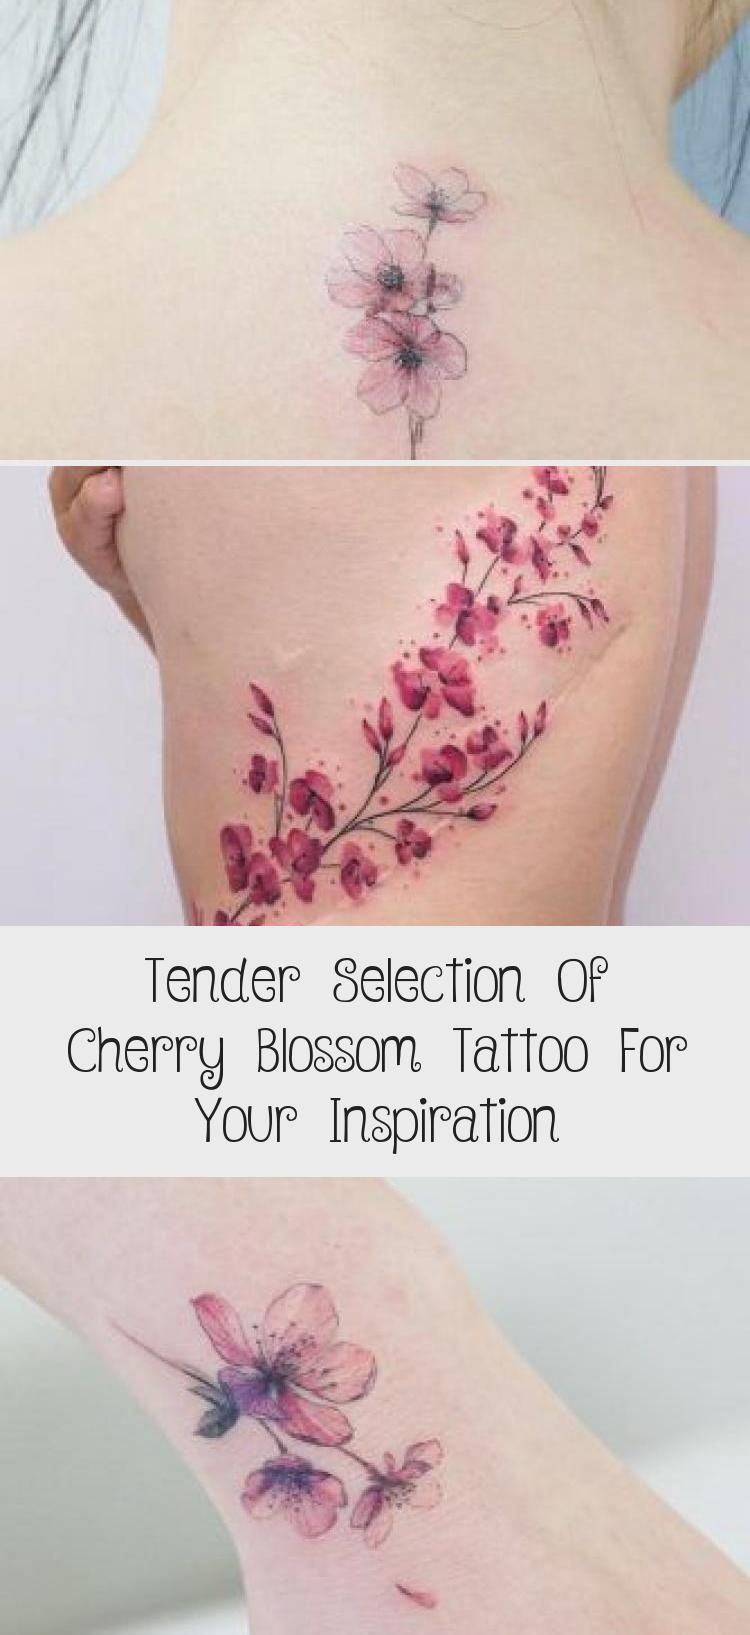 Tender Selection Of Cherry Blossom Tattoo For Your Inspiration Cherry Blossom Tattoo Blossom Tattoo Cherry Blossom Tattoo Meaning